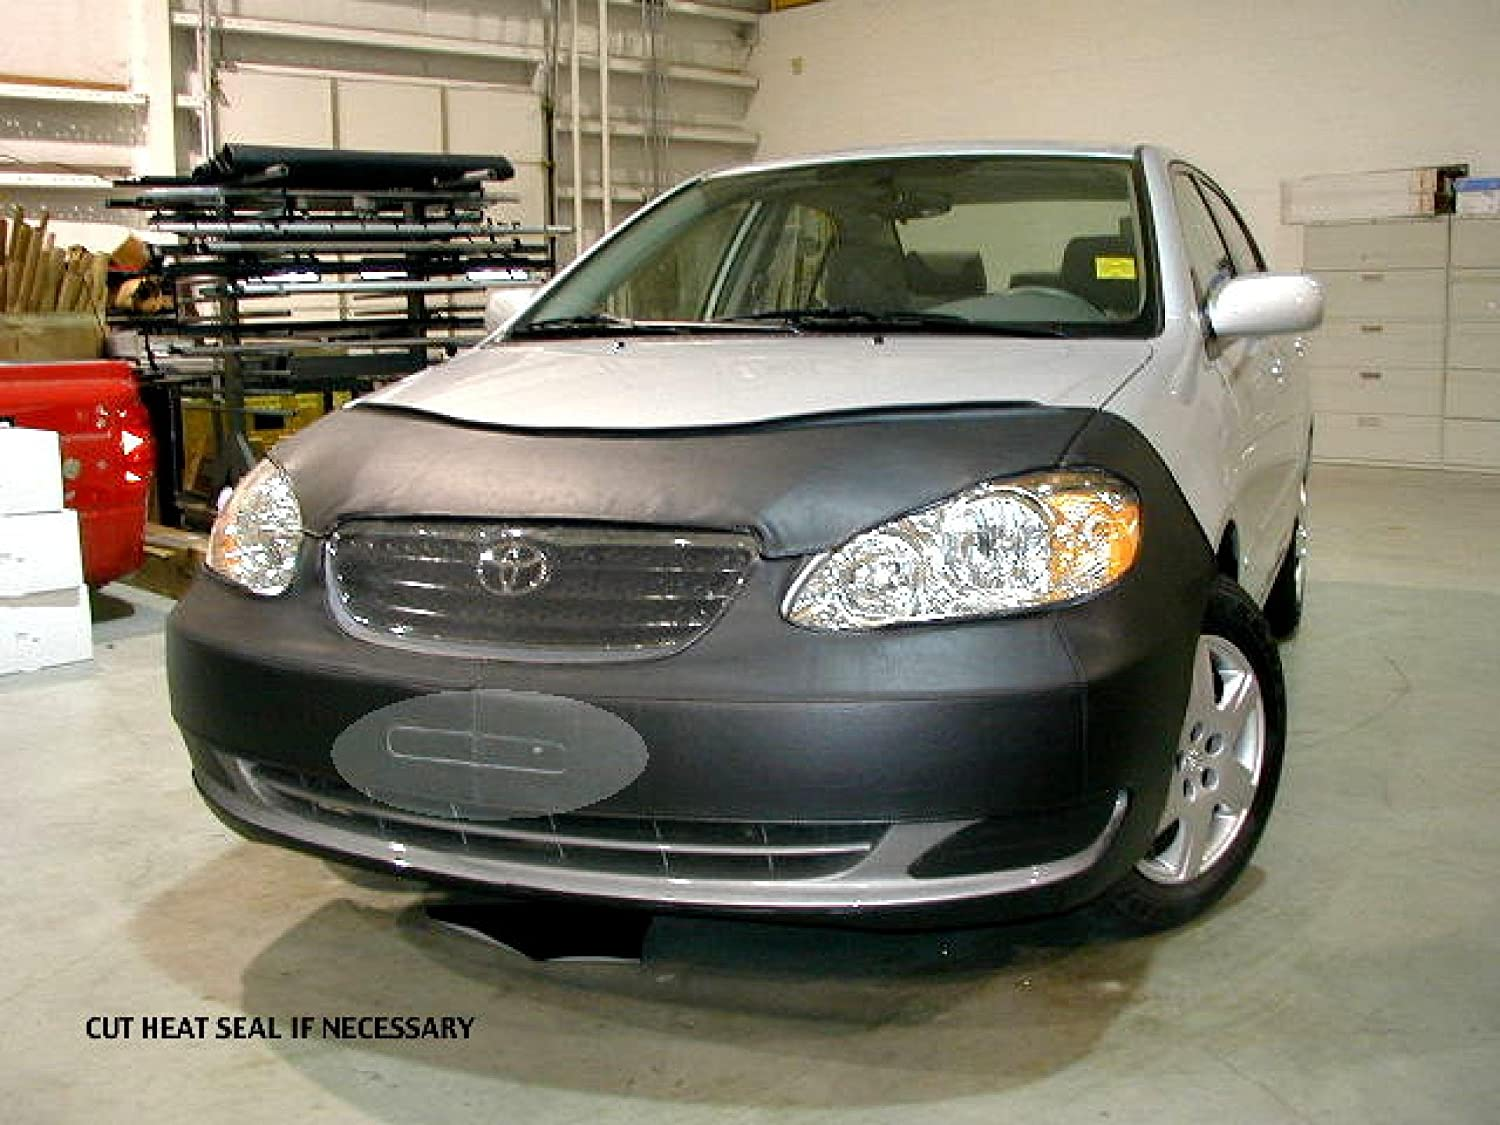 Lebra 2 piece Front End Cover Black Fits Car Mask Bra TOYOTA,COROLLA,,CE /& LE Only,2005 thru 2007